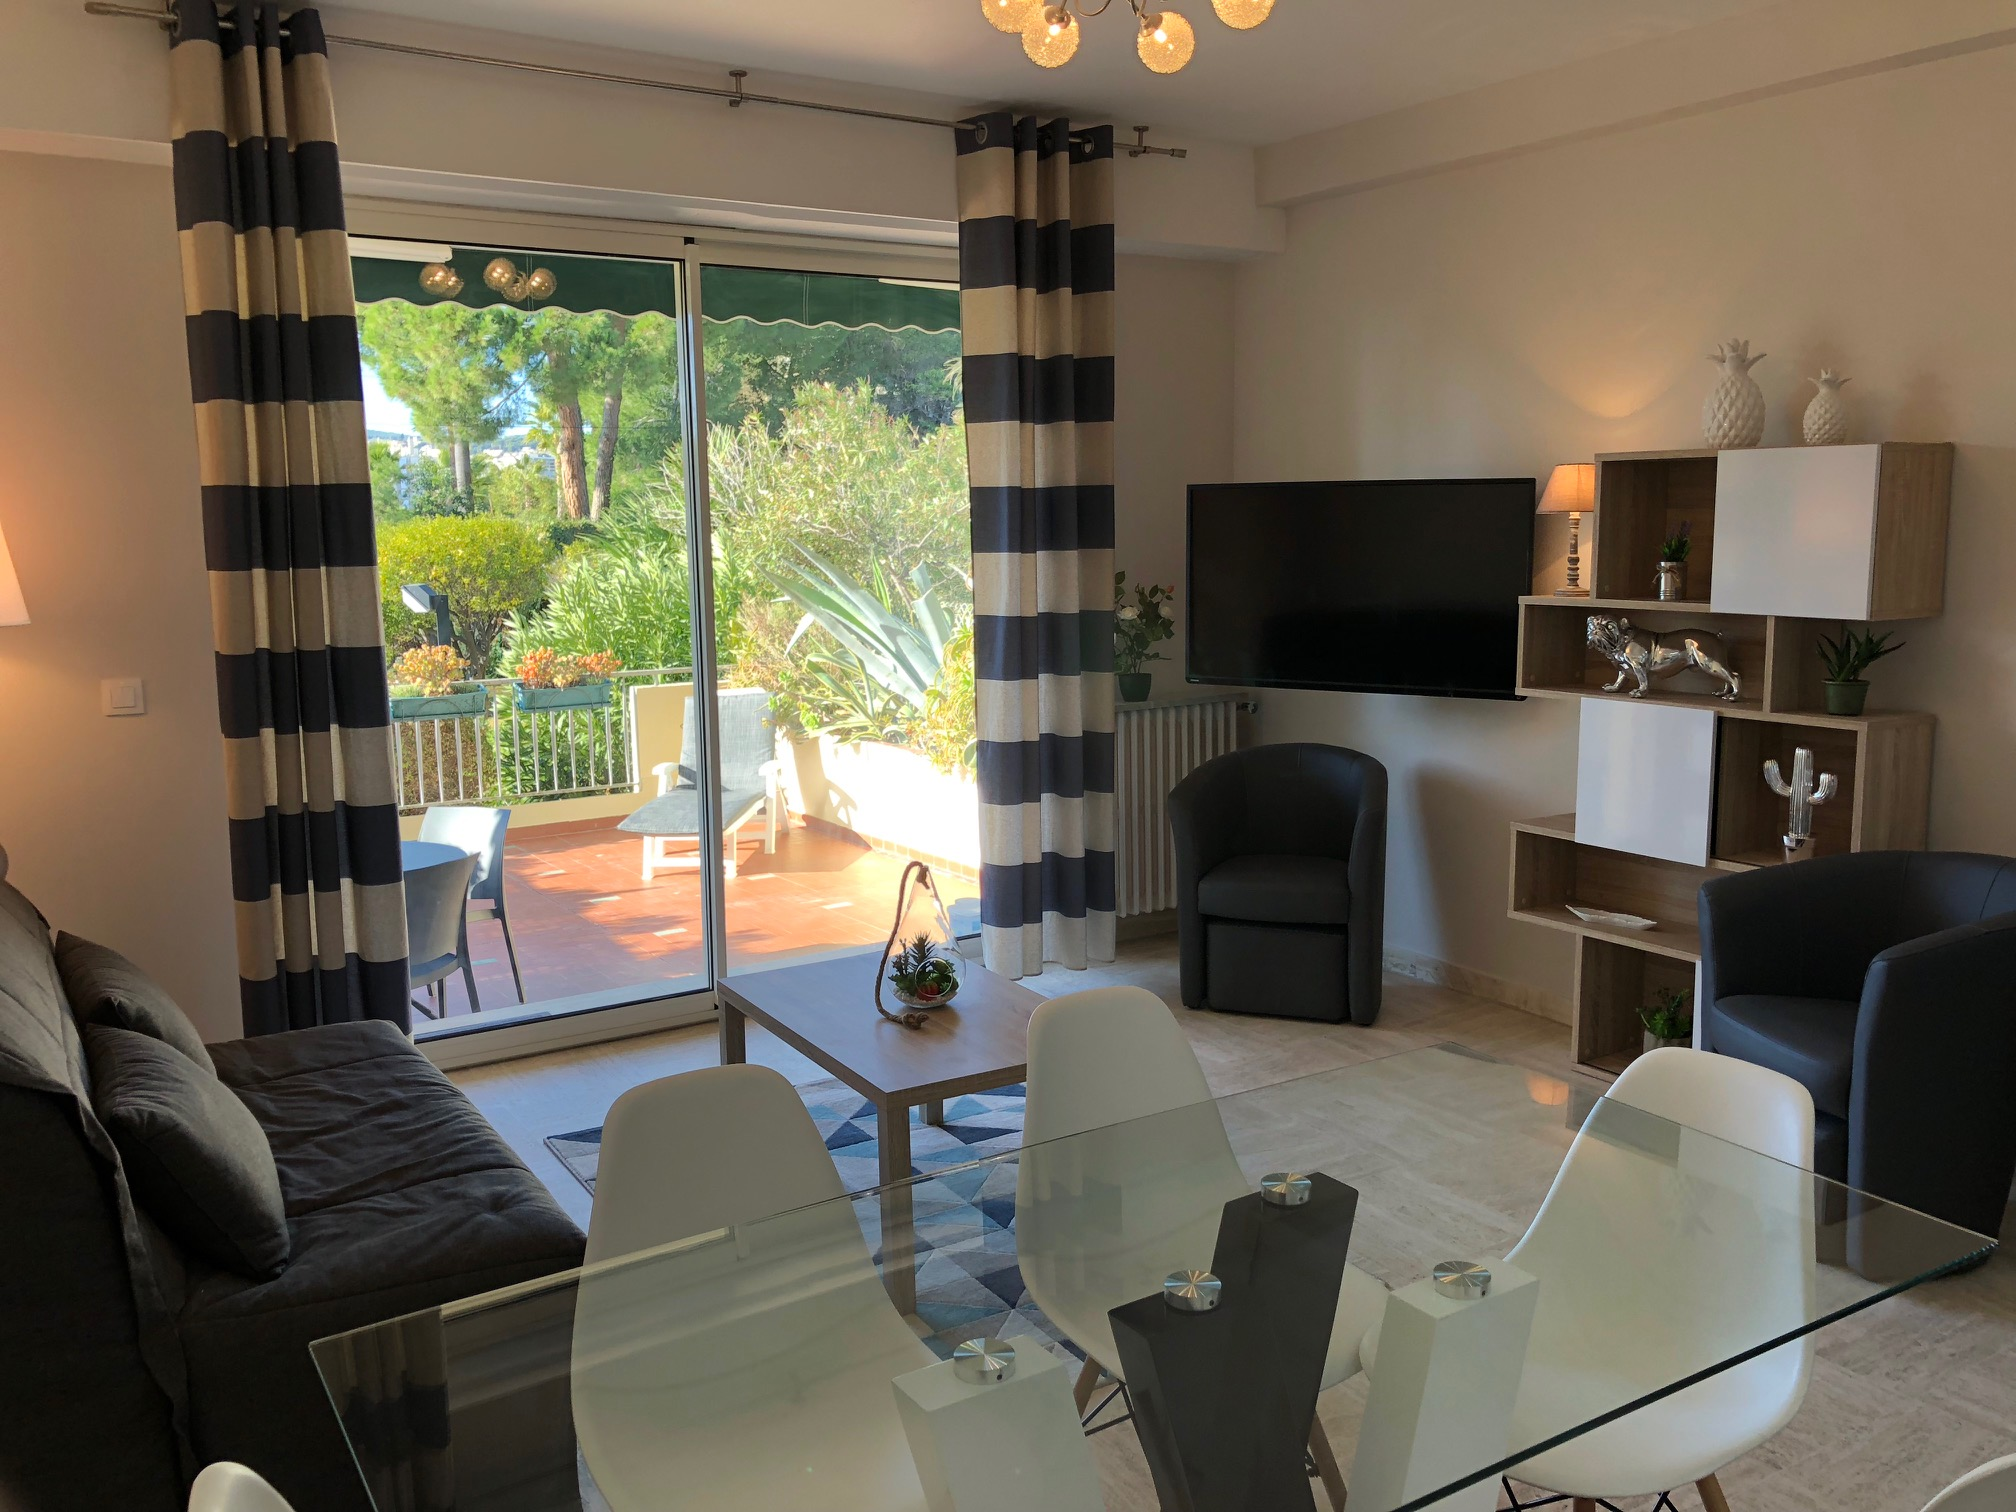 Appartement f3 location appartement meubl antibes particulier - Location studio meuble antibes ...